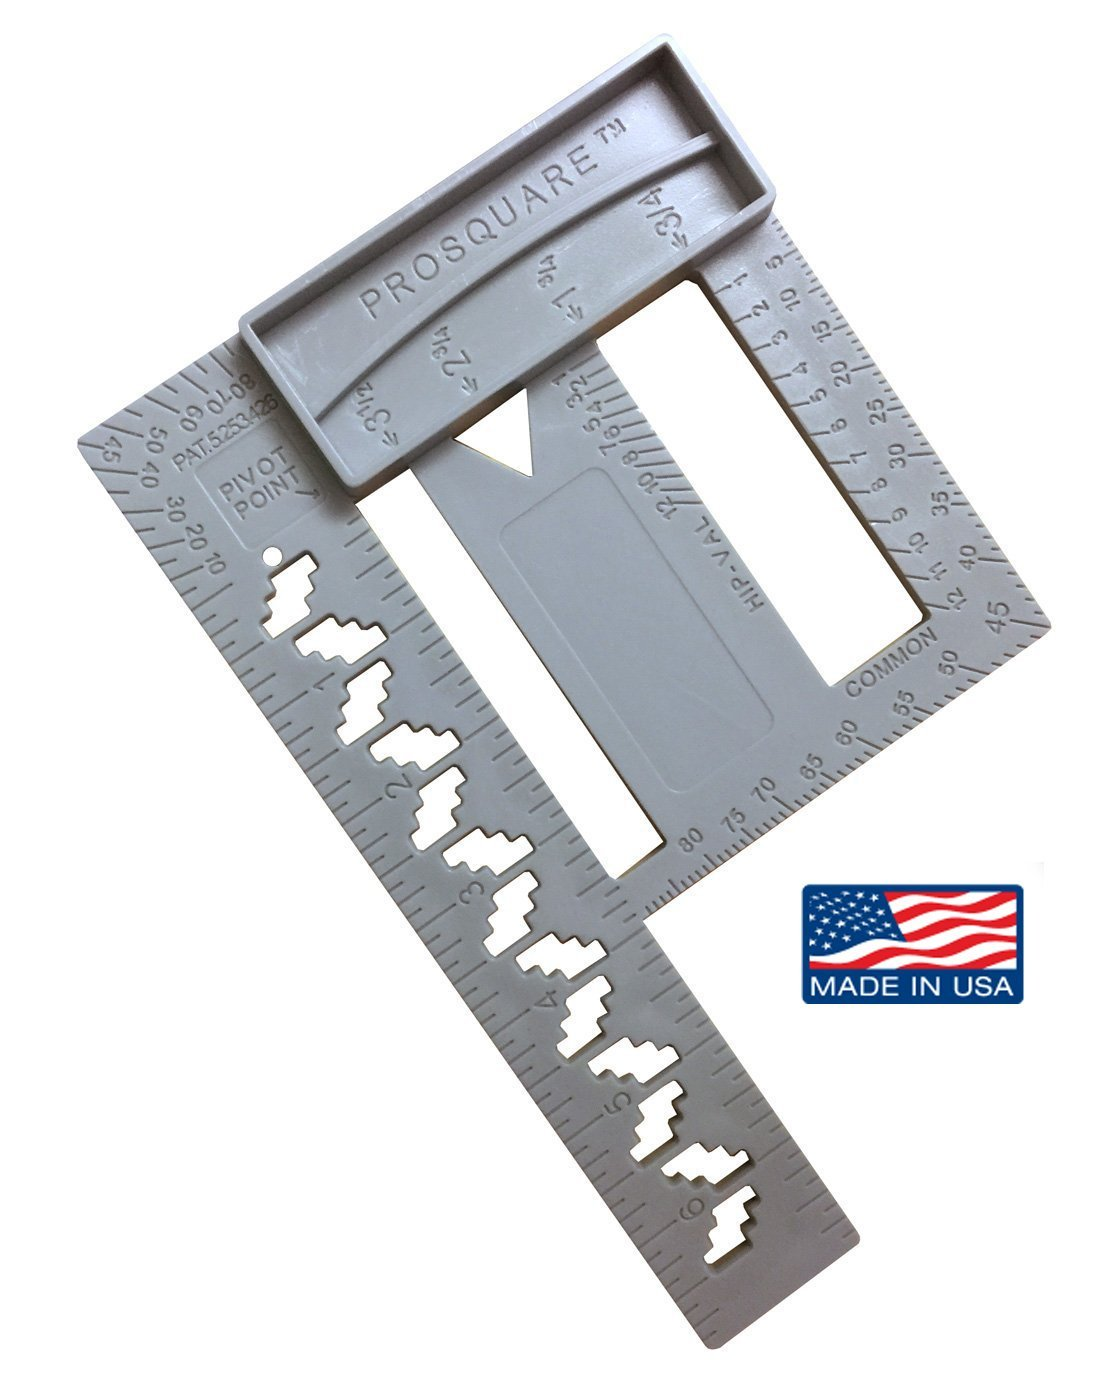 PRO SQUARE - Make layout smoother, cleaner and more accurate - Speed Square Combo, Framing, Compass, Plate/Wall Layout for professional contractors - Made in USA